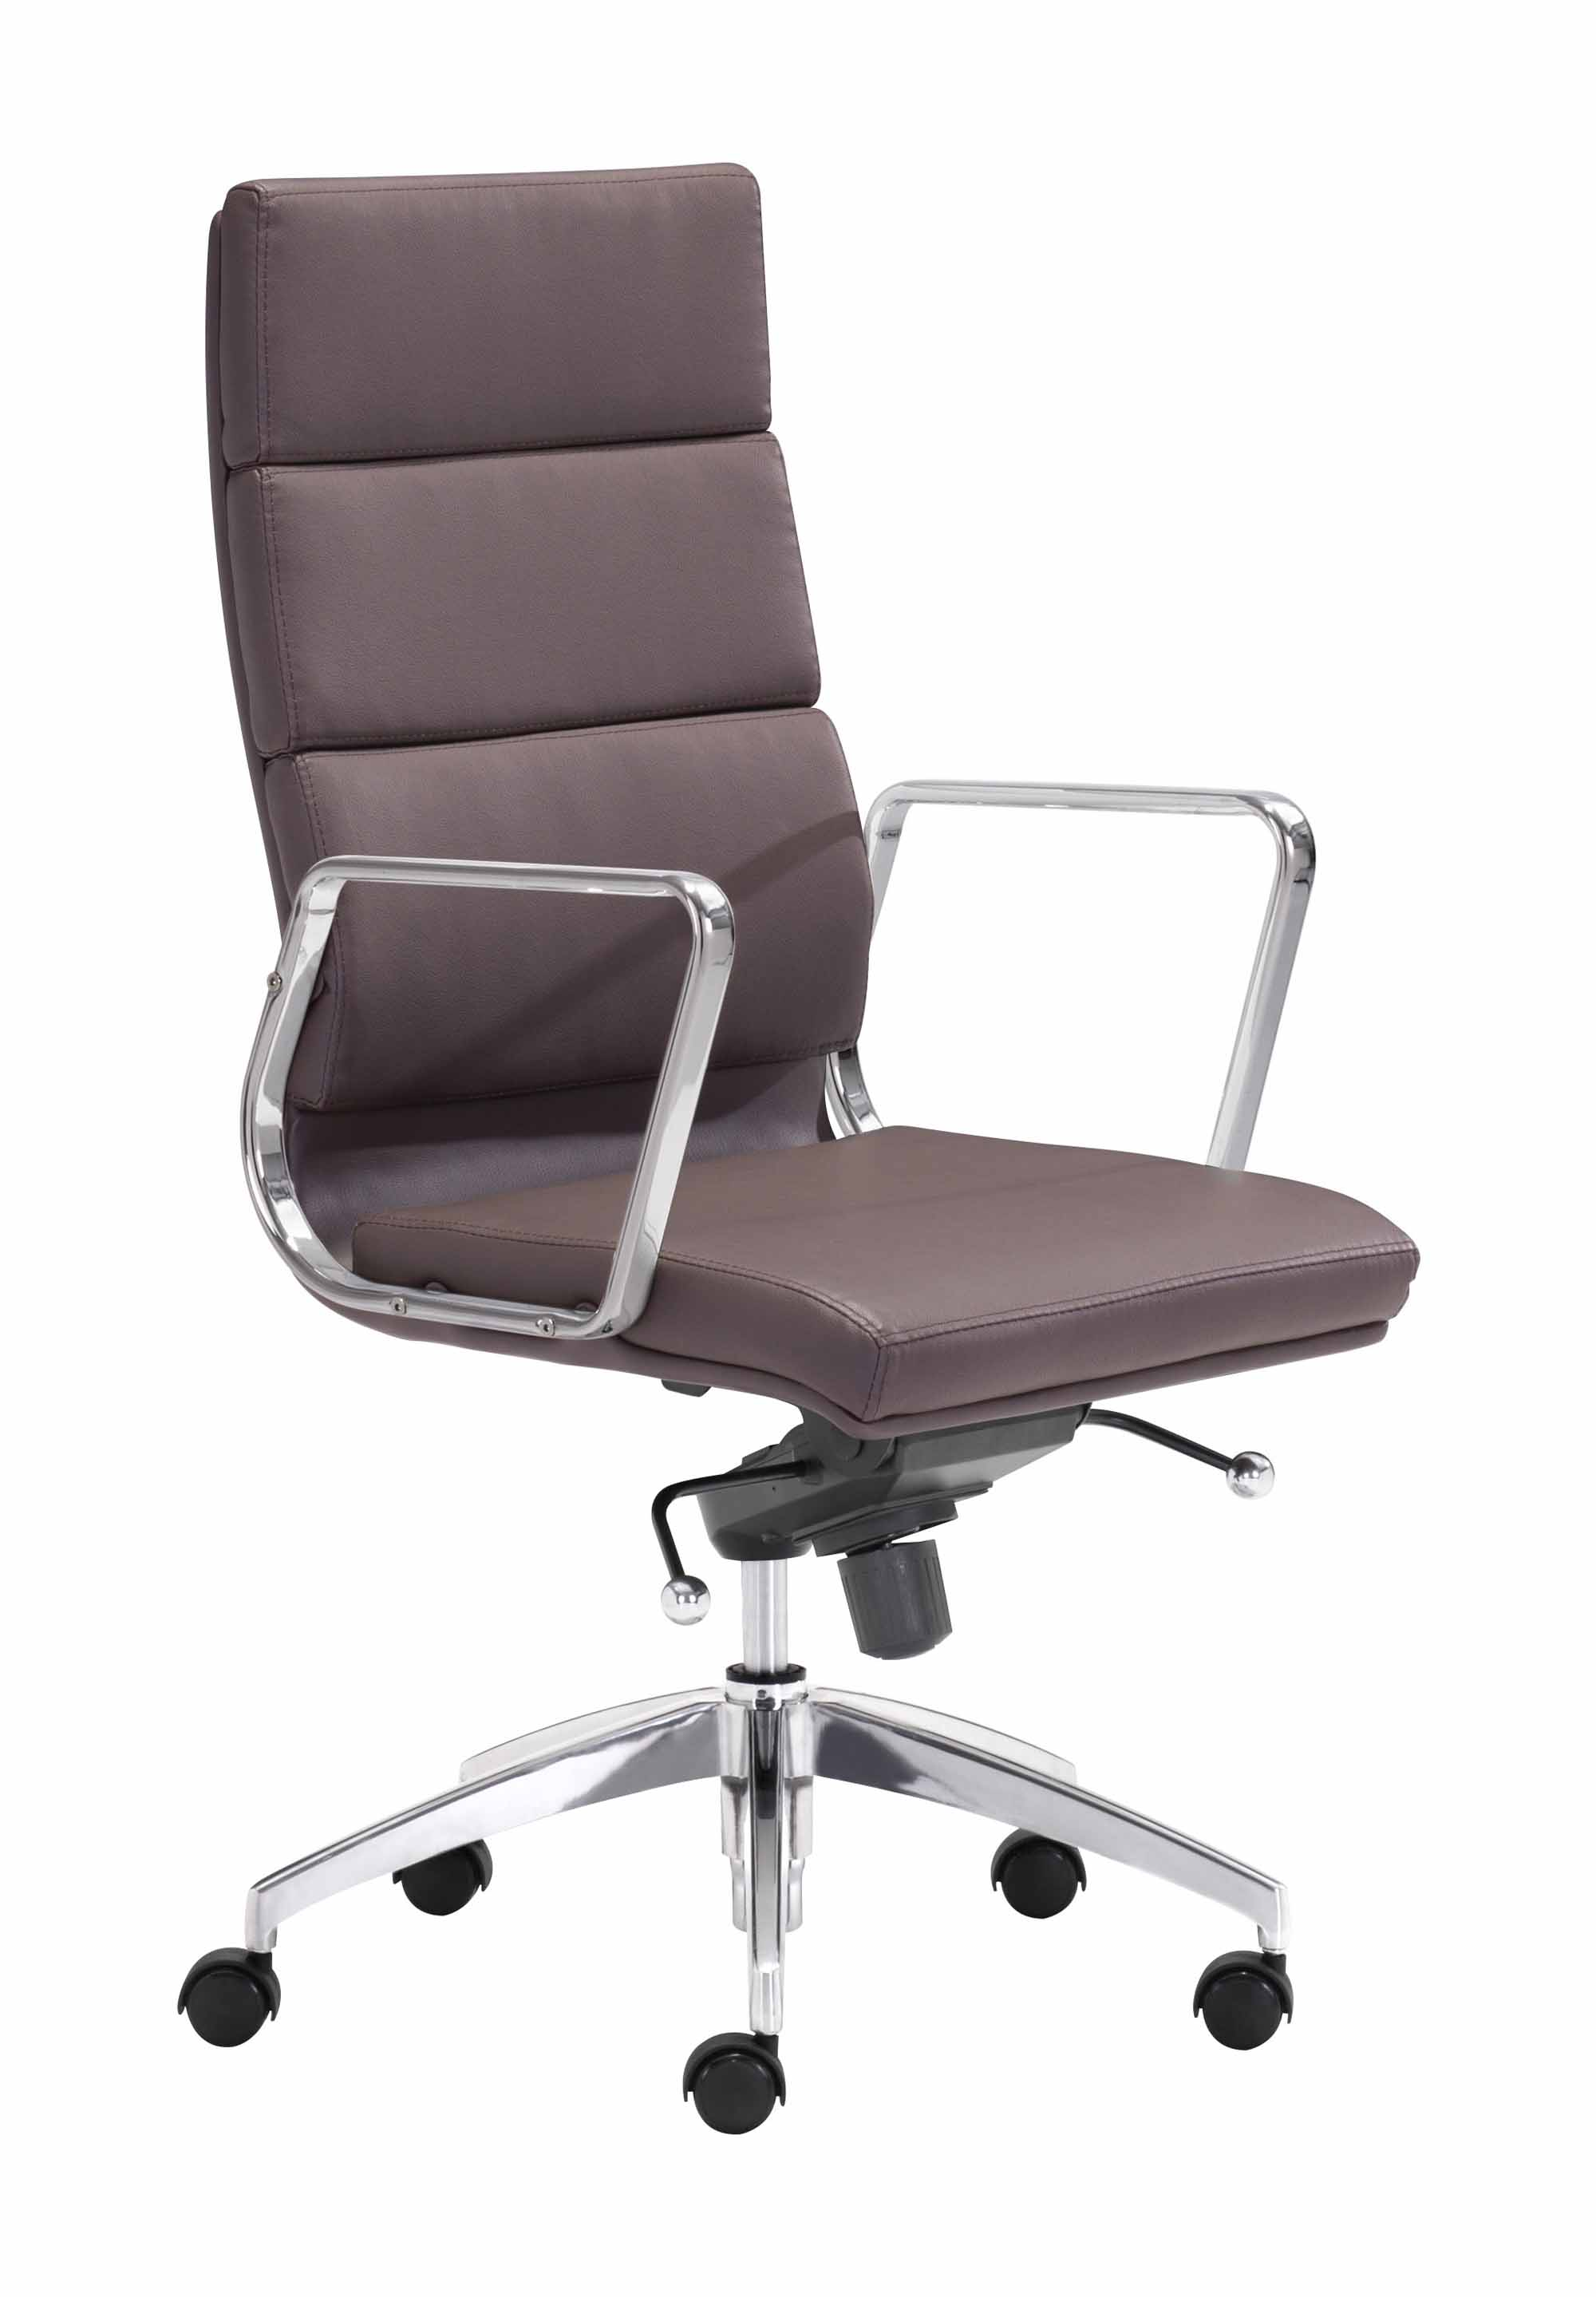 sc 1 st  Futonland & Engineer High Back Office Chair Espresso by Zuo Modern